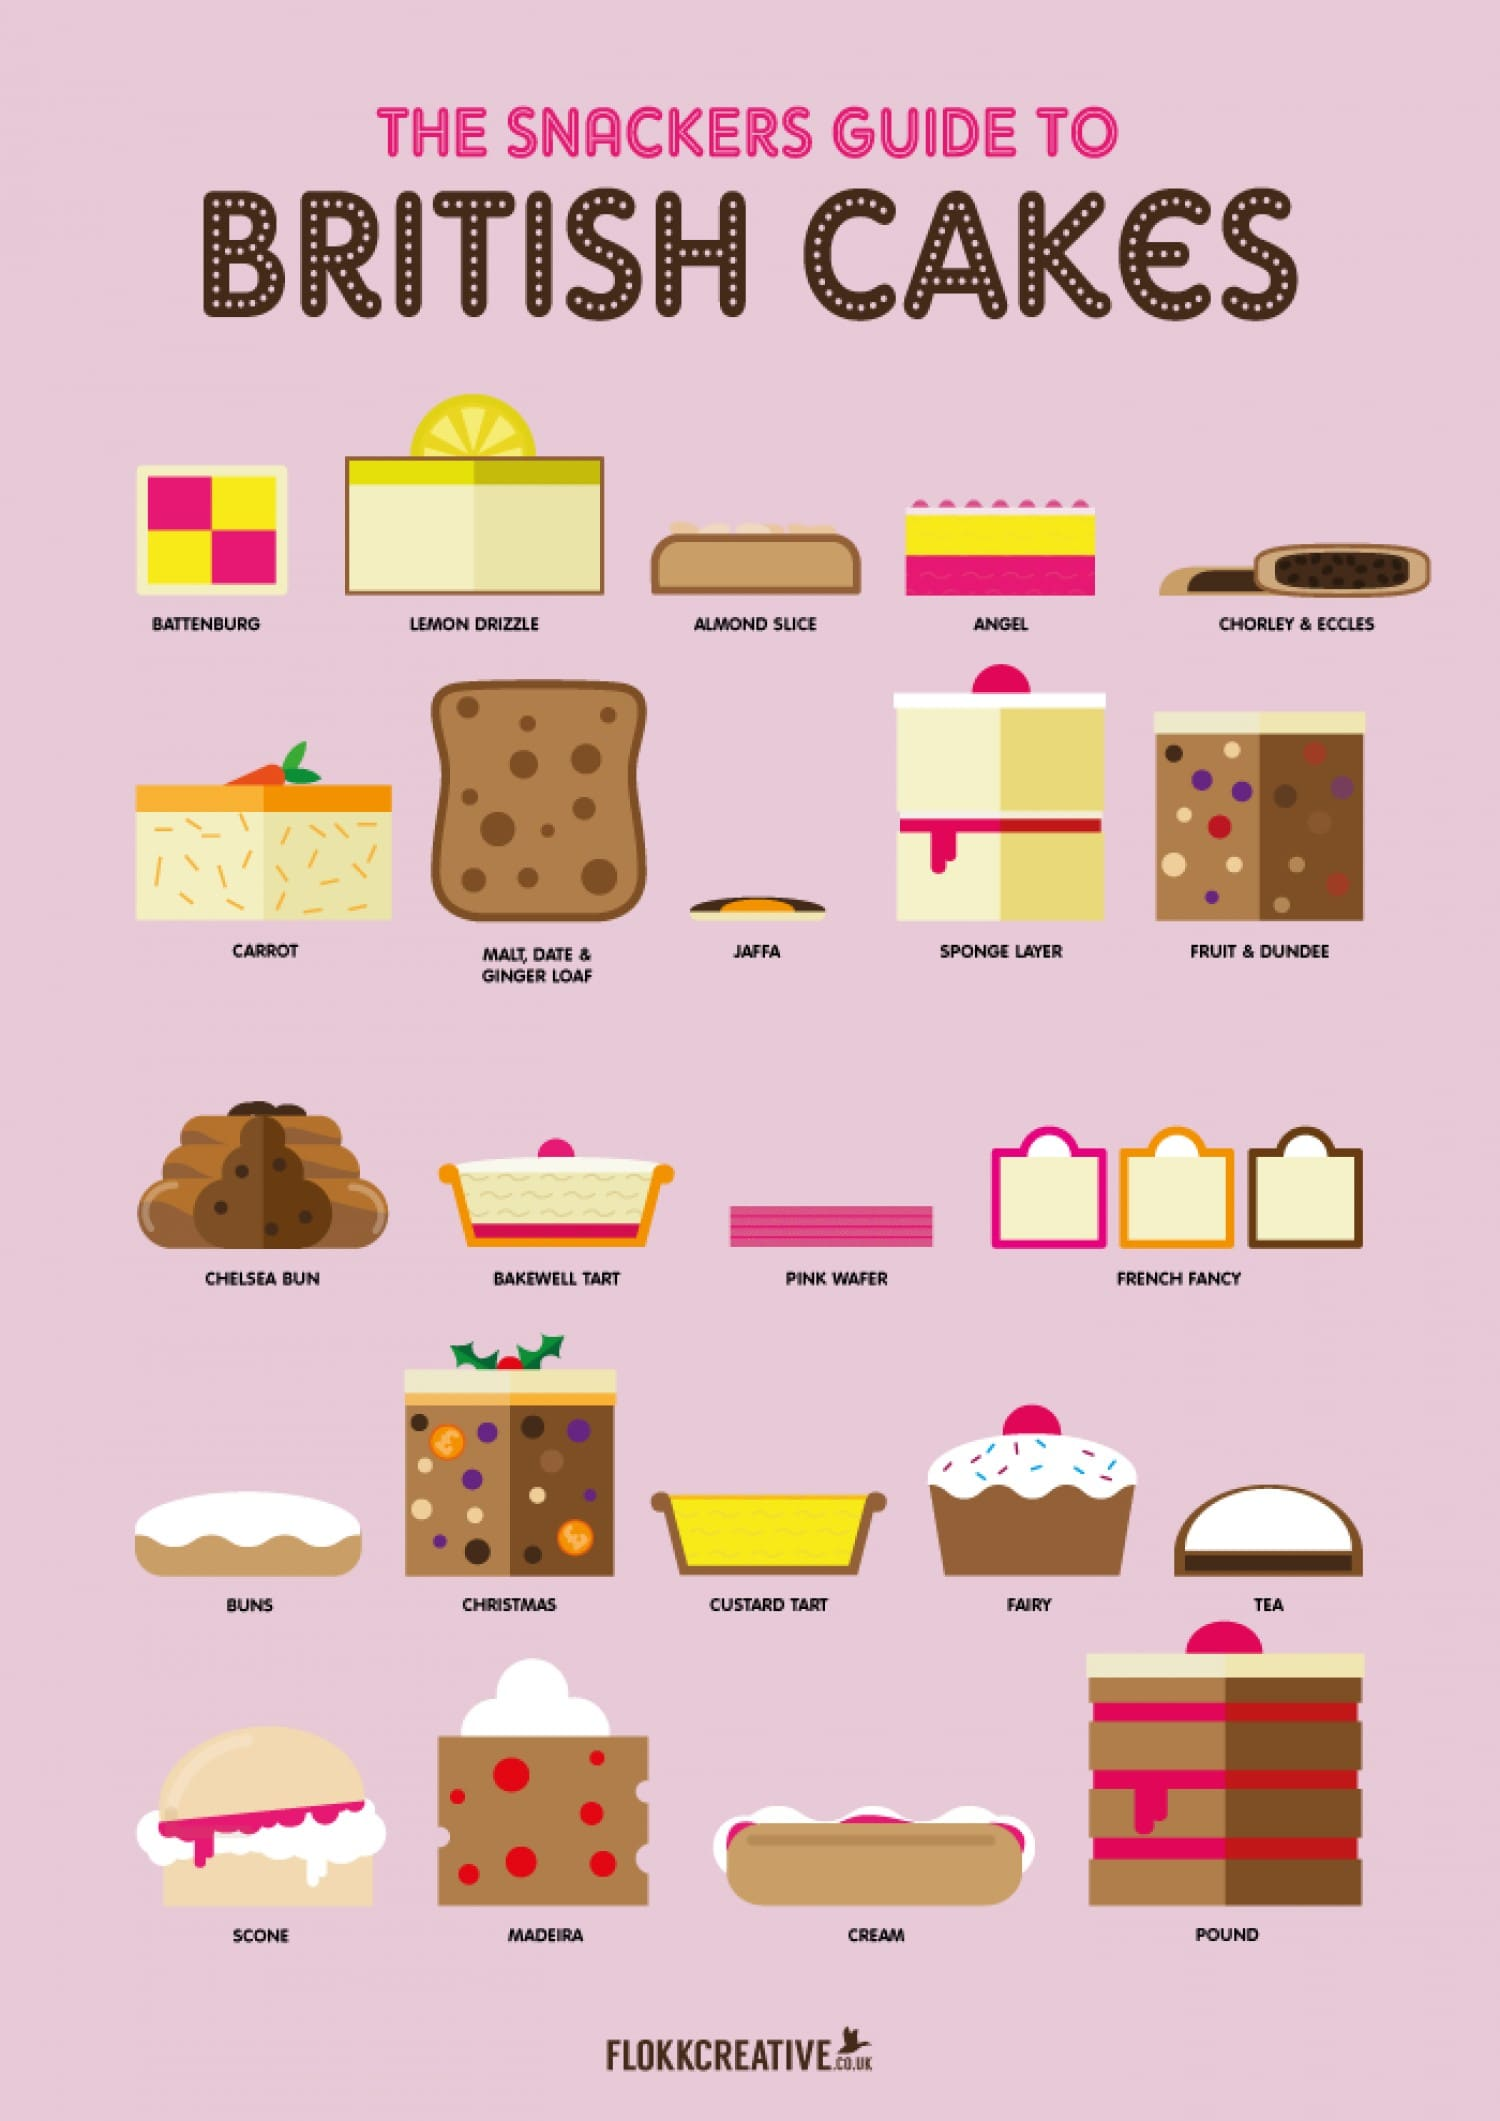 The Snackers Guide to British Cakes